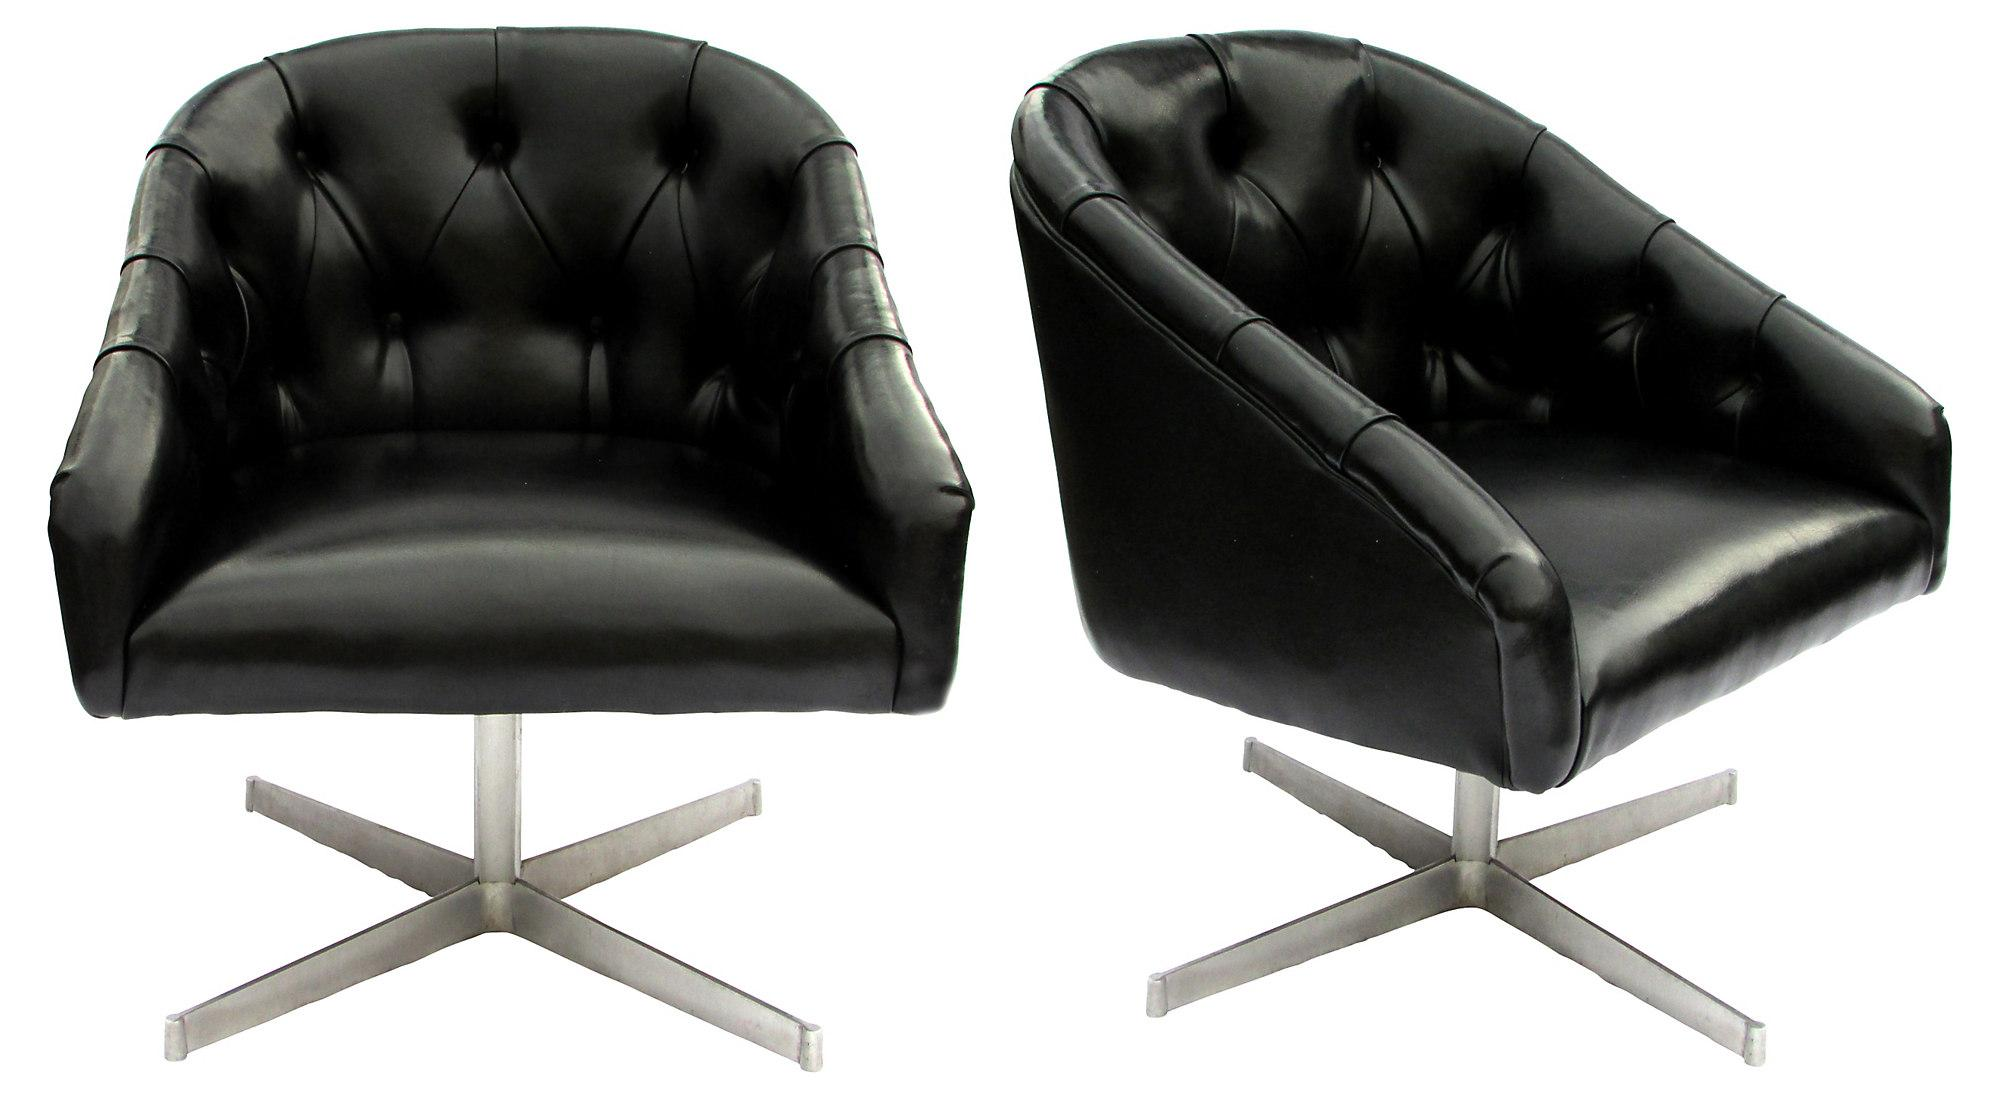 This mid century tufted club chairs is no longer available - Image Of Shelby Williams Mid Century Tufted Swivel Chairs Pair